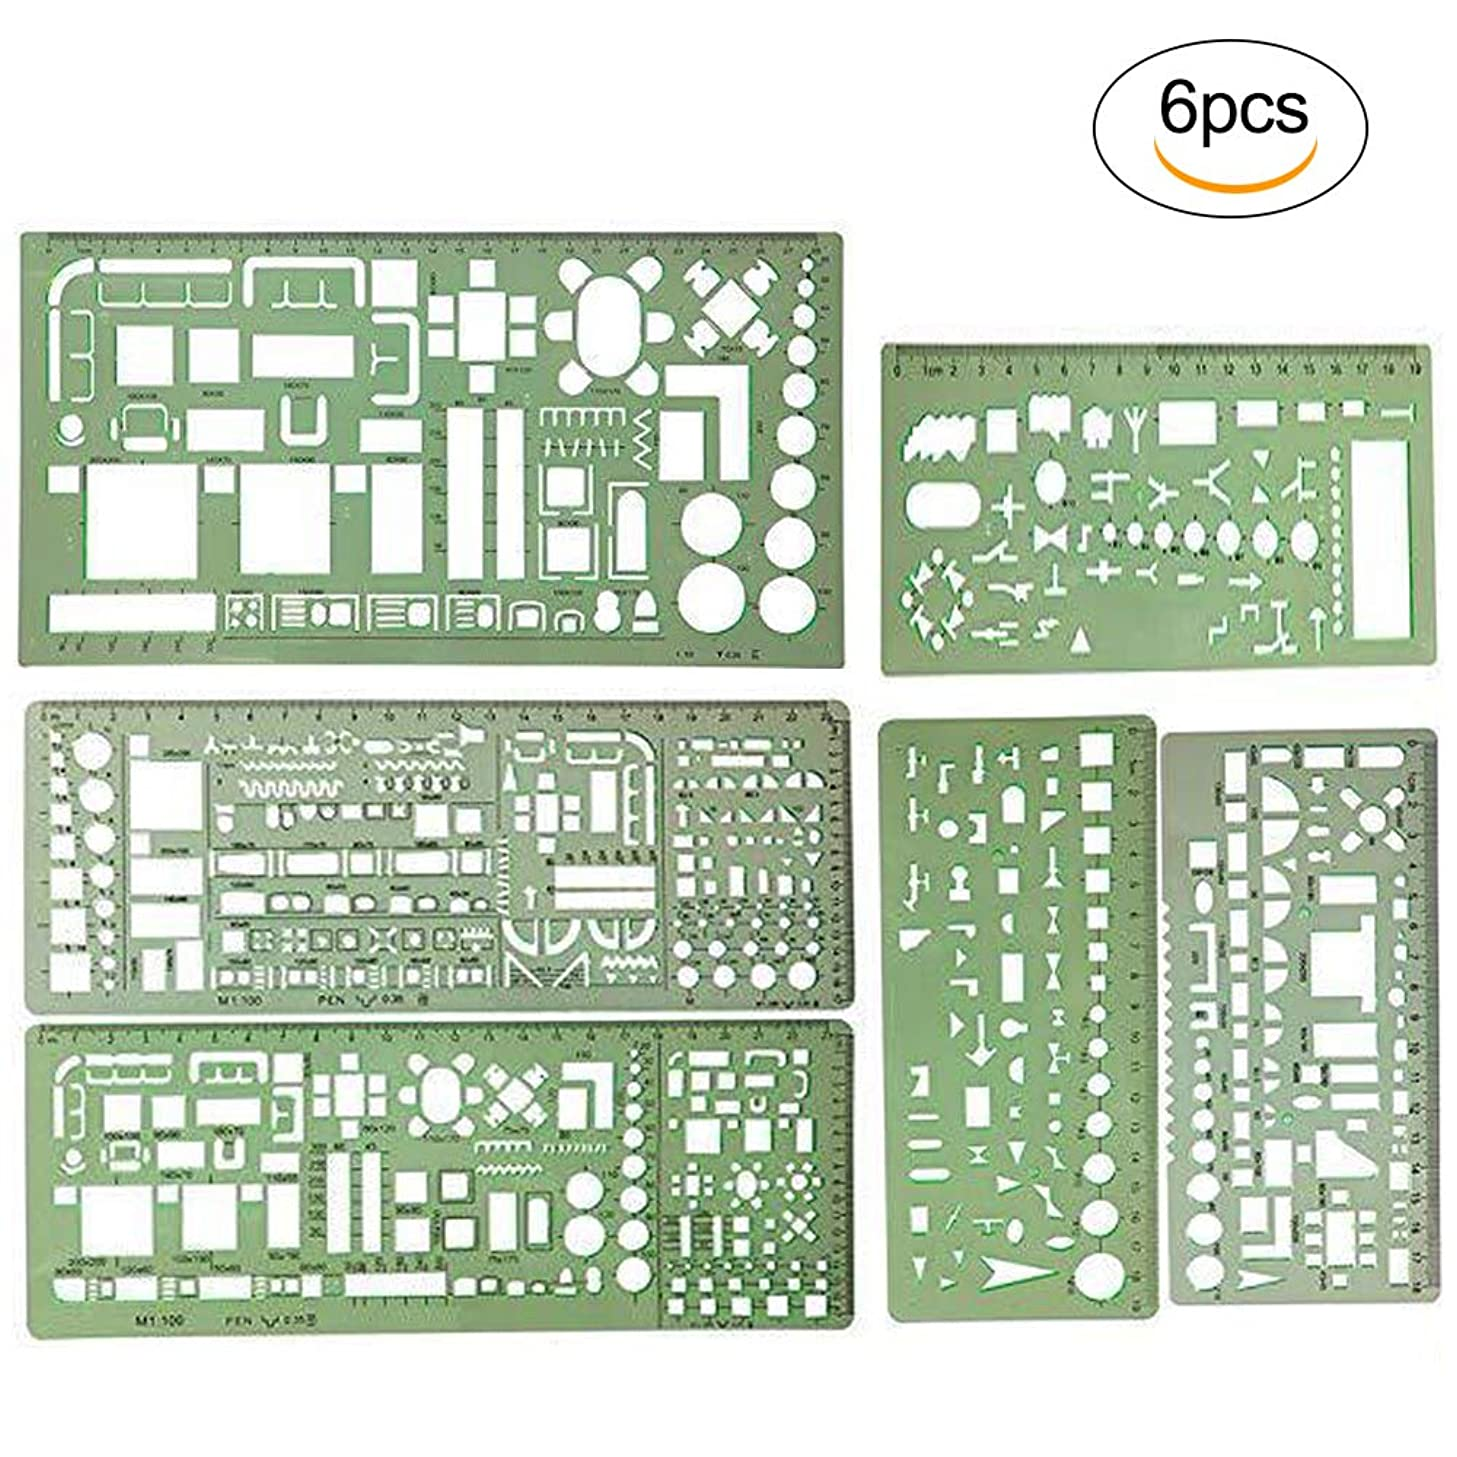 6 Pieces Geometric Drawings Templates Measuring Rulers,Building Formwork,Drawings Templates,Circle Template,Plastic Ruler.for Engineering Drawings,School,Home Office Drawing Supplies (Green)